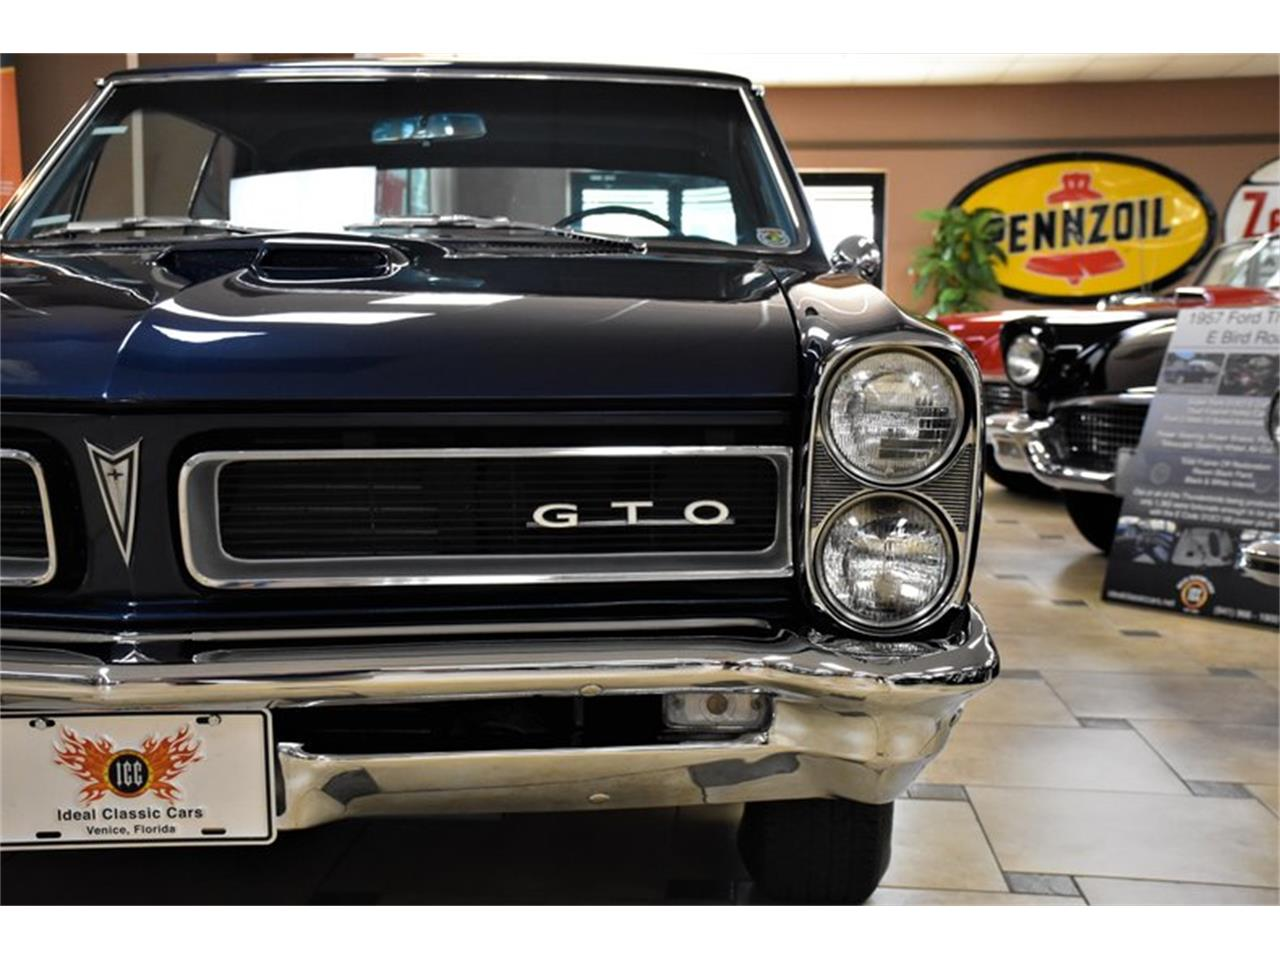 Large Picture of '65 Pontiac GTO Offered by Ideal Classic Cars - Q6O3